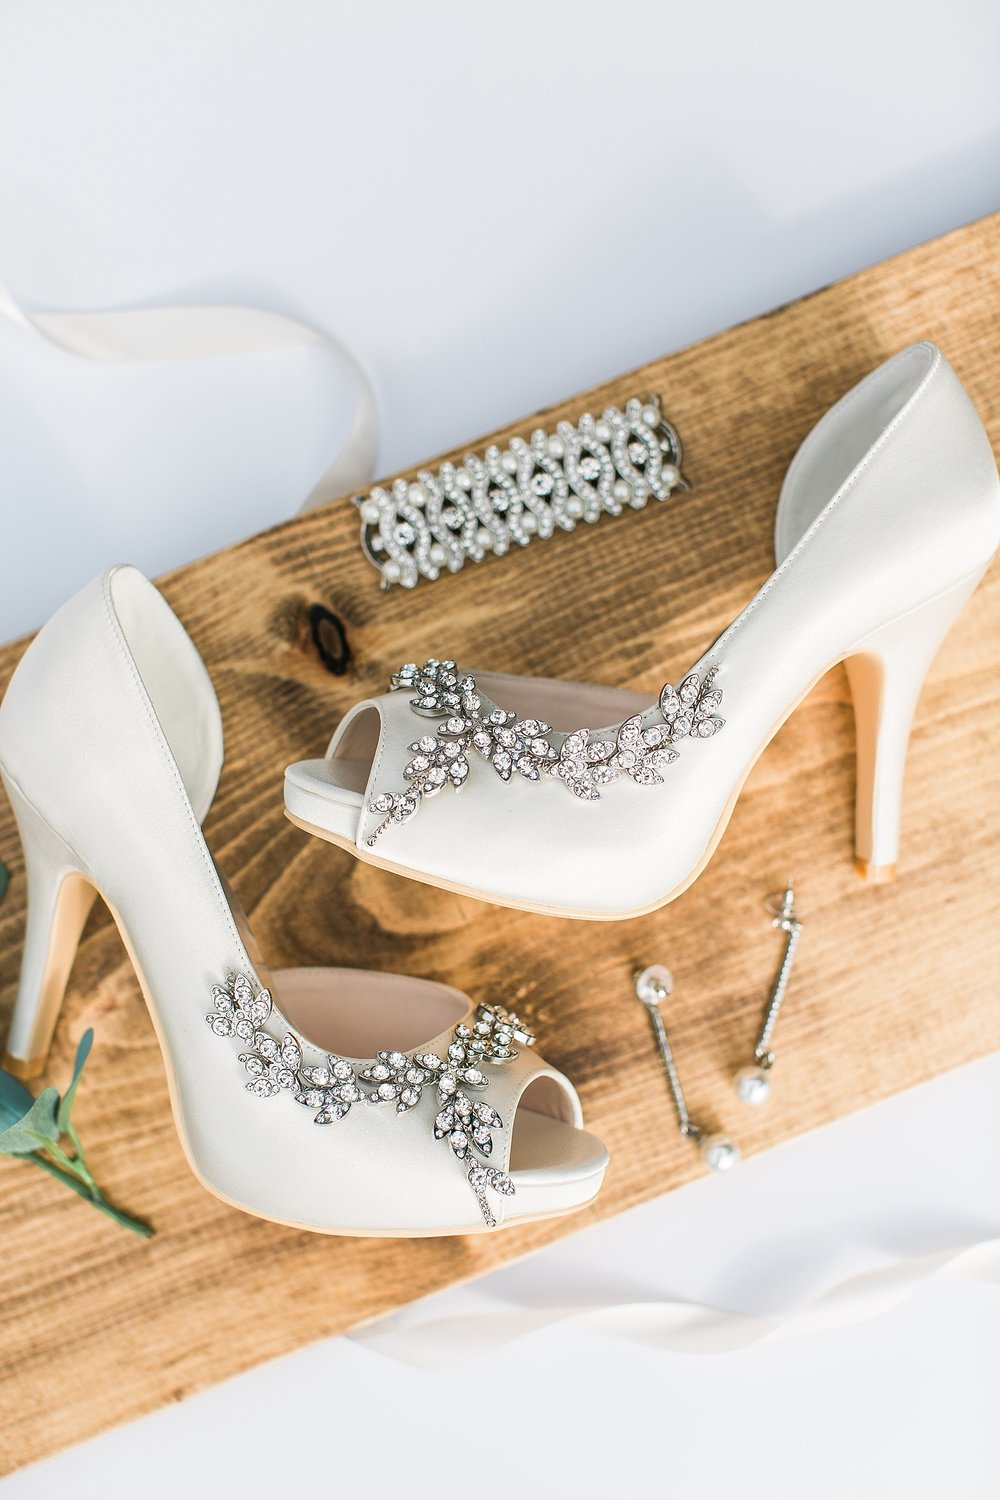 Bridal shoes and jewelry rustic for wedding at the Chart House Summer Wedding Lakeville Minnesota Minneapolis Wedding Photographer Mallory Kiesow